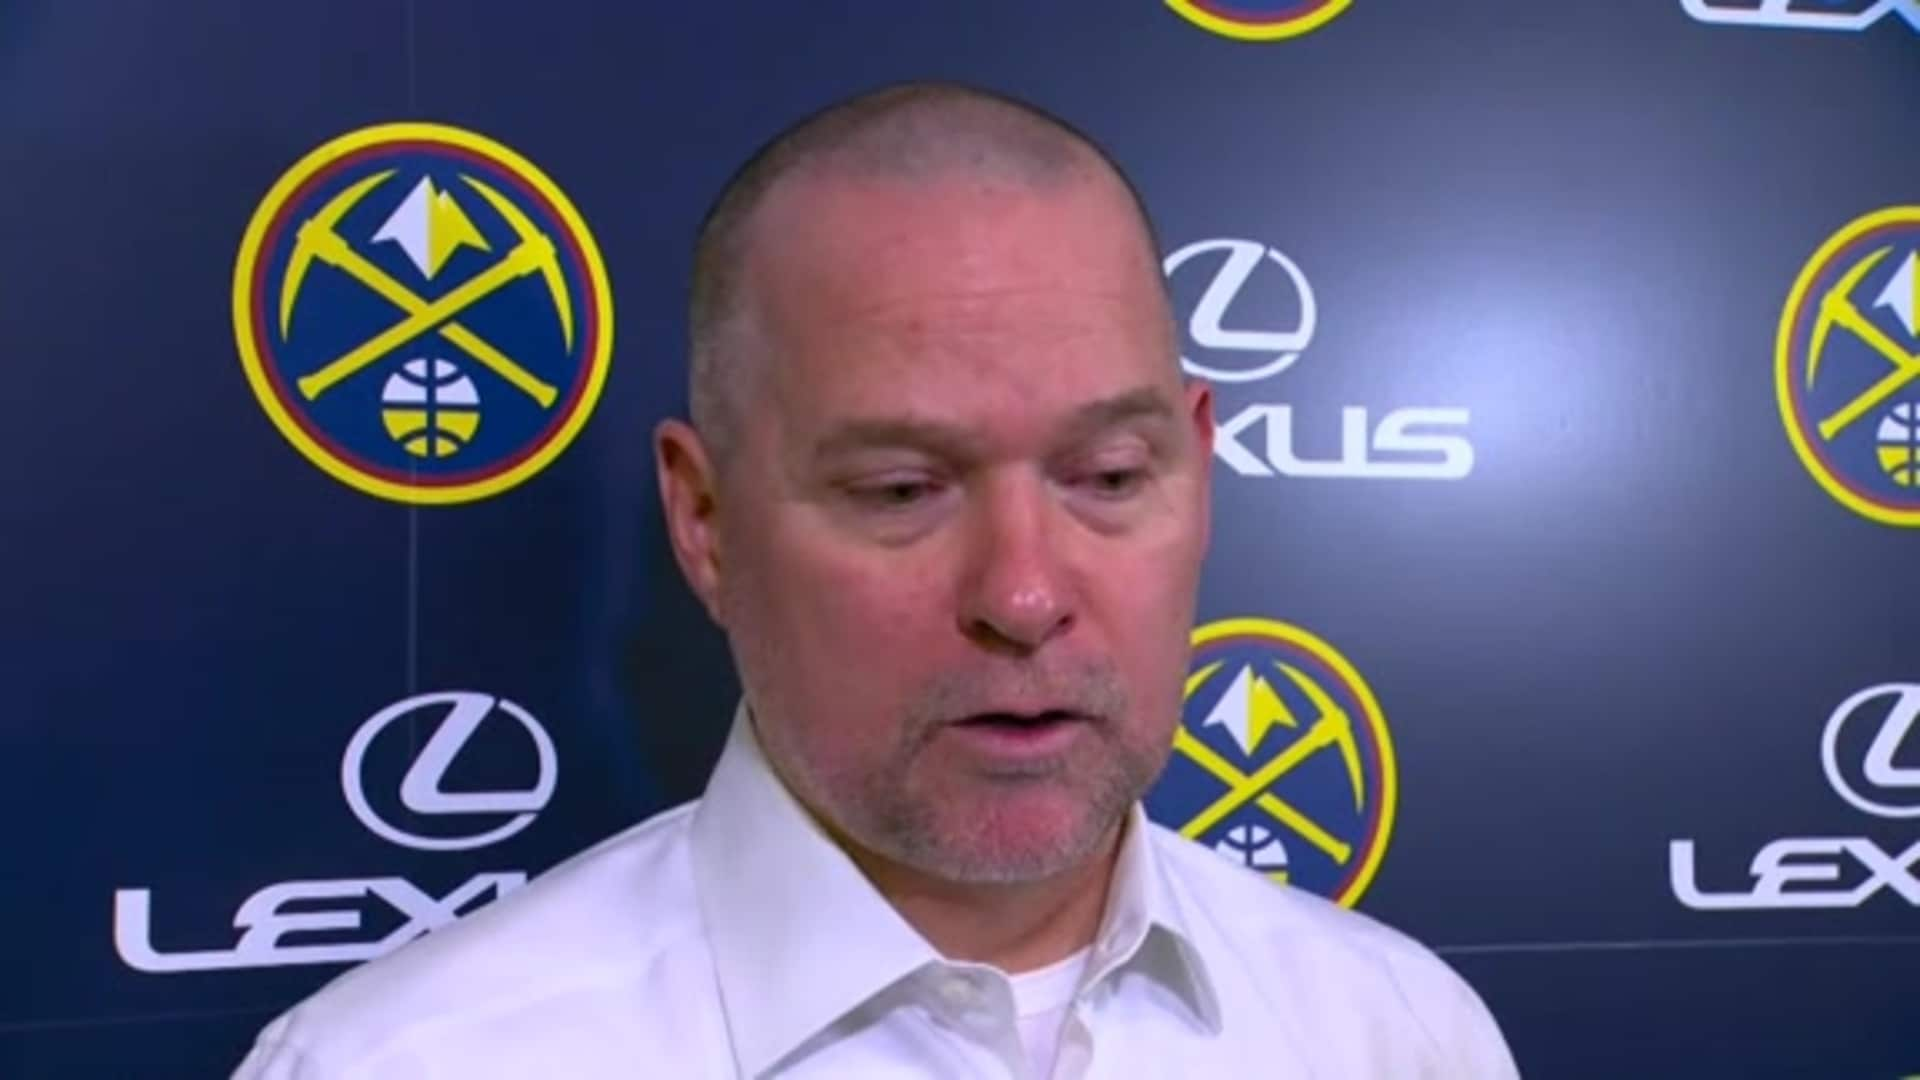 Coach Malone's postgame comments after Nuggets loss to Lakers